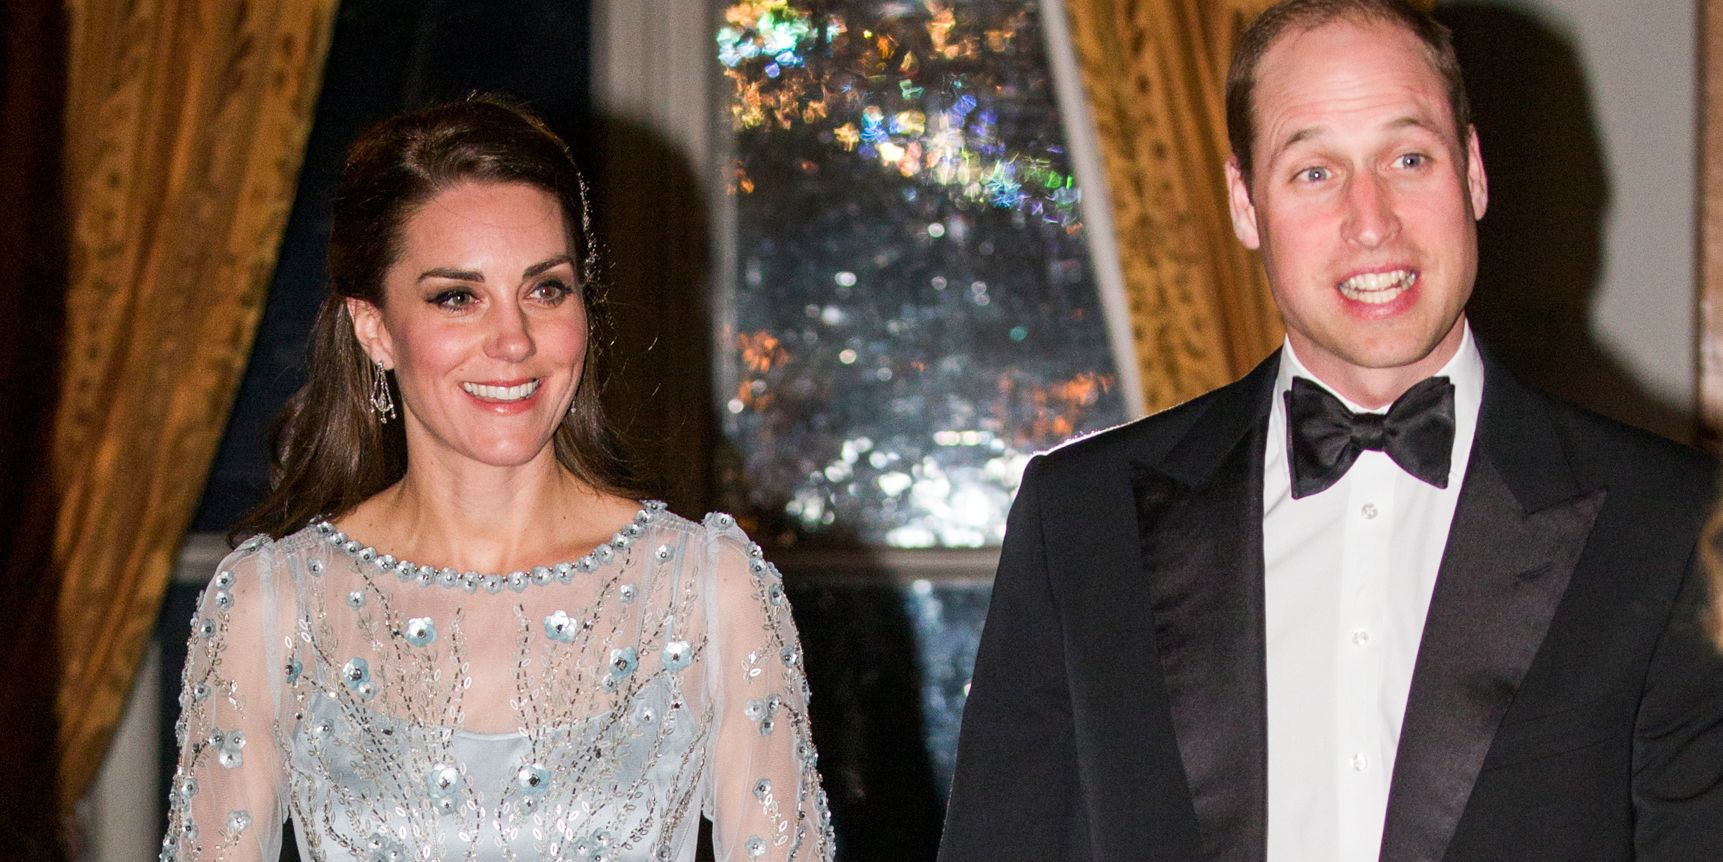 How Kate Middleton And Prince William Spent The Royal Wedding Reception